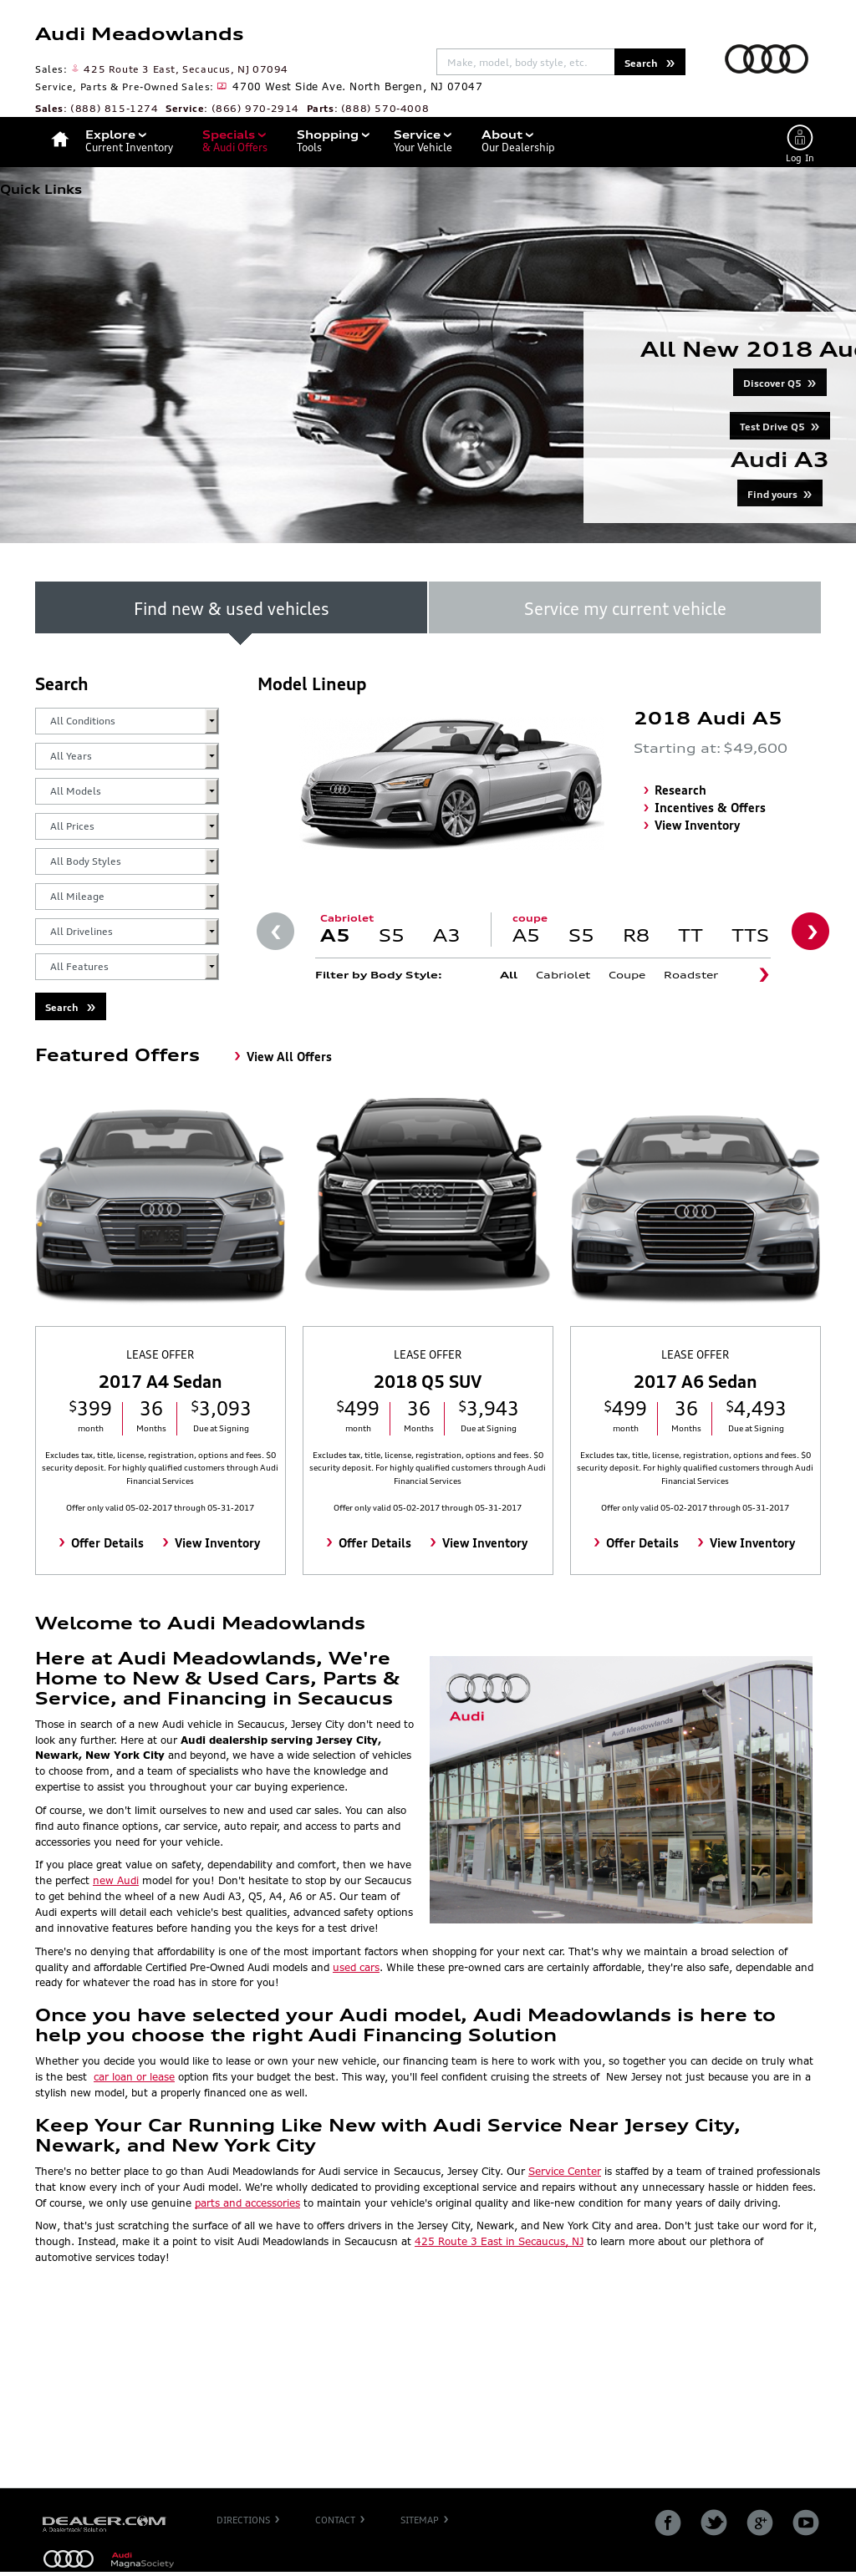 Audi Meadowlands Competitors Revenue And Employees Owler Company - Audi meadowlands